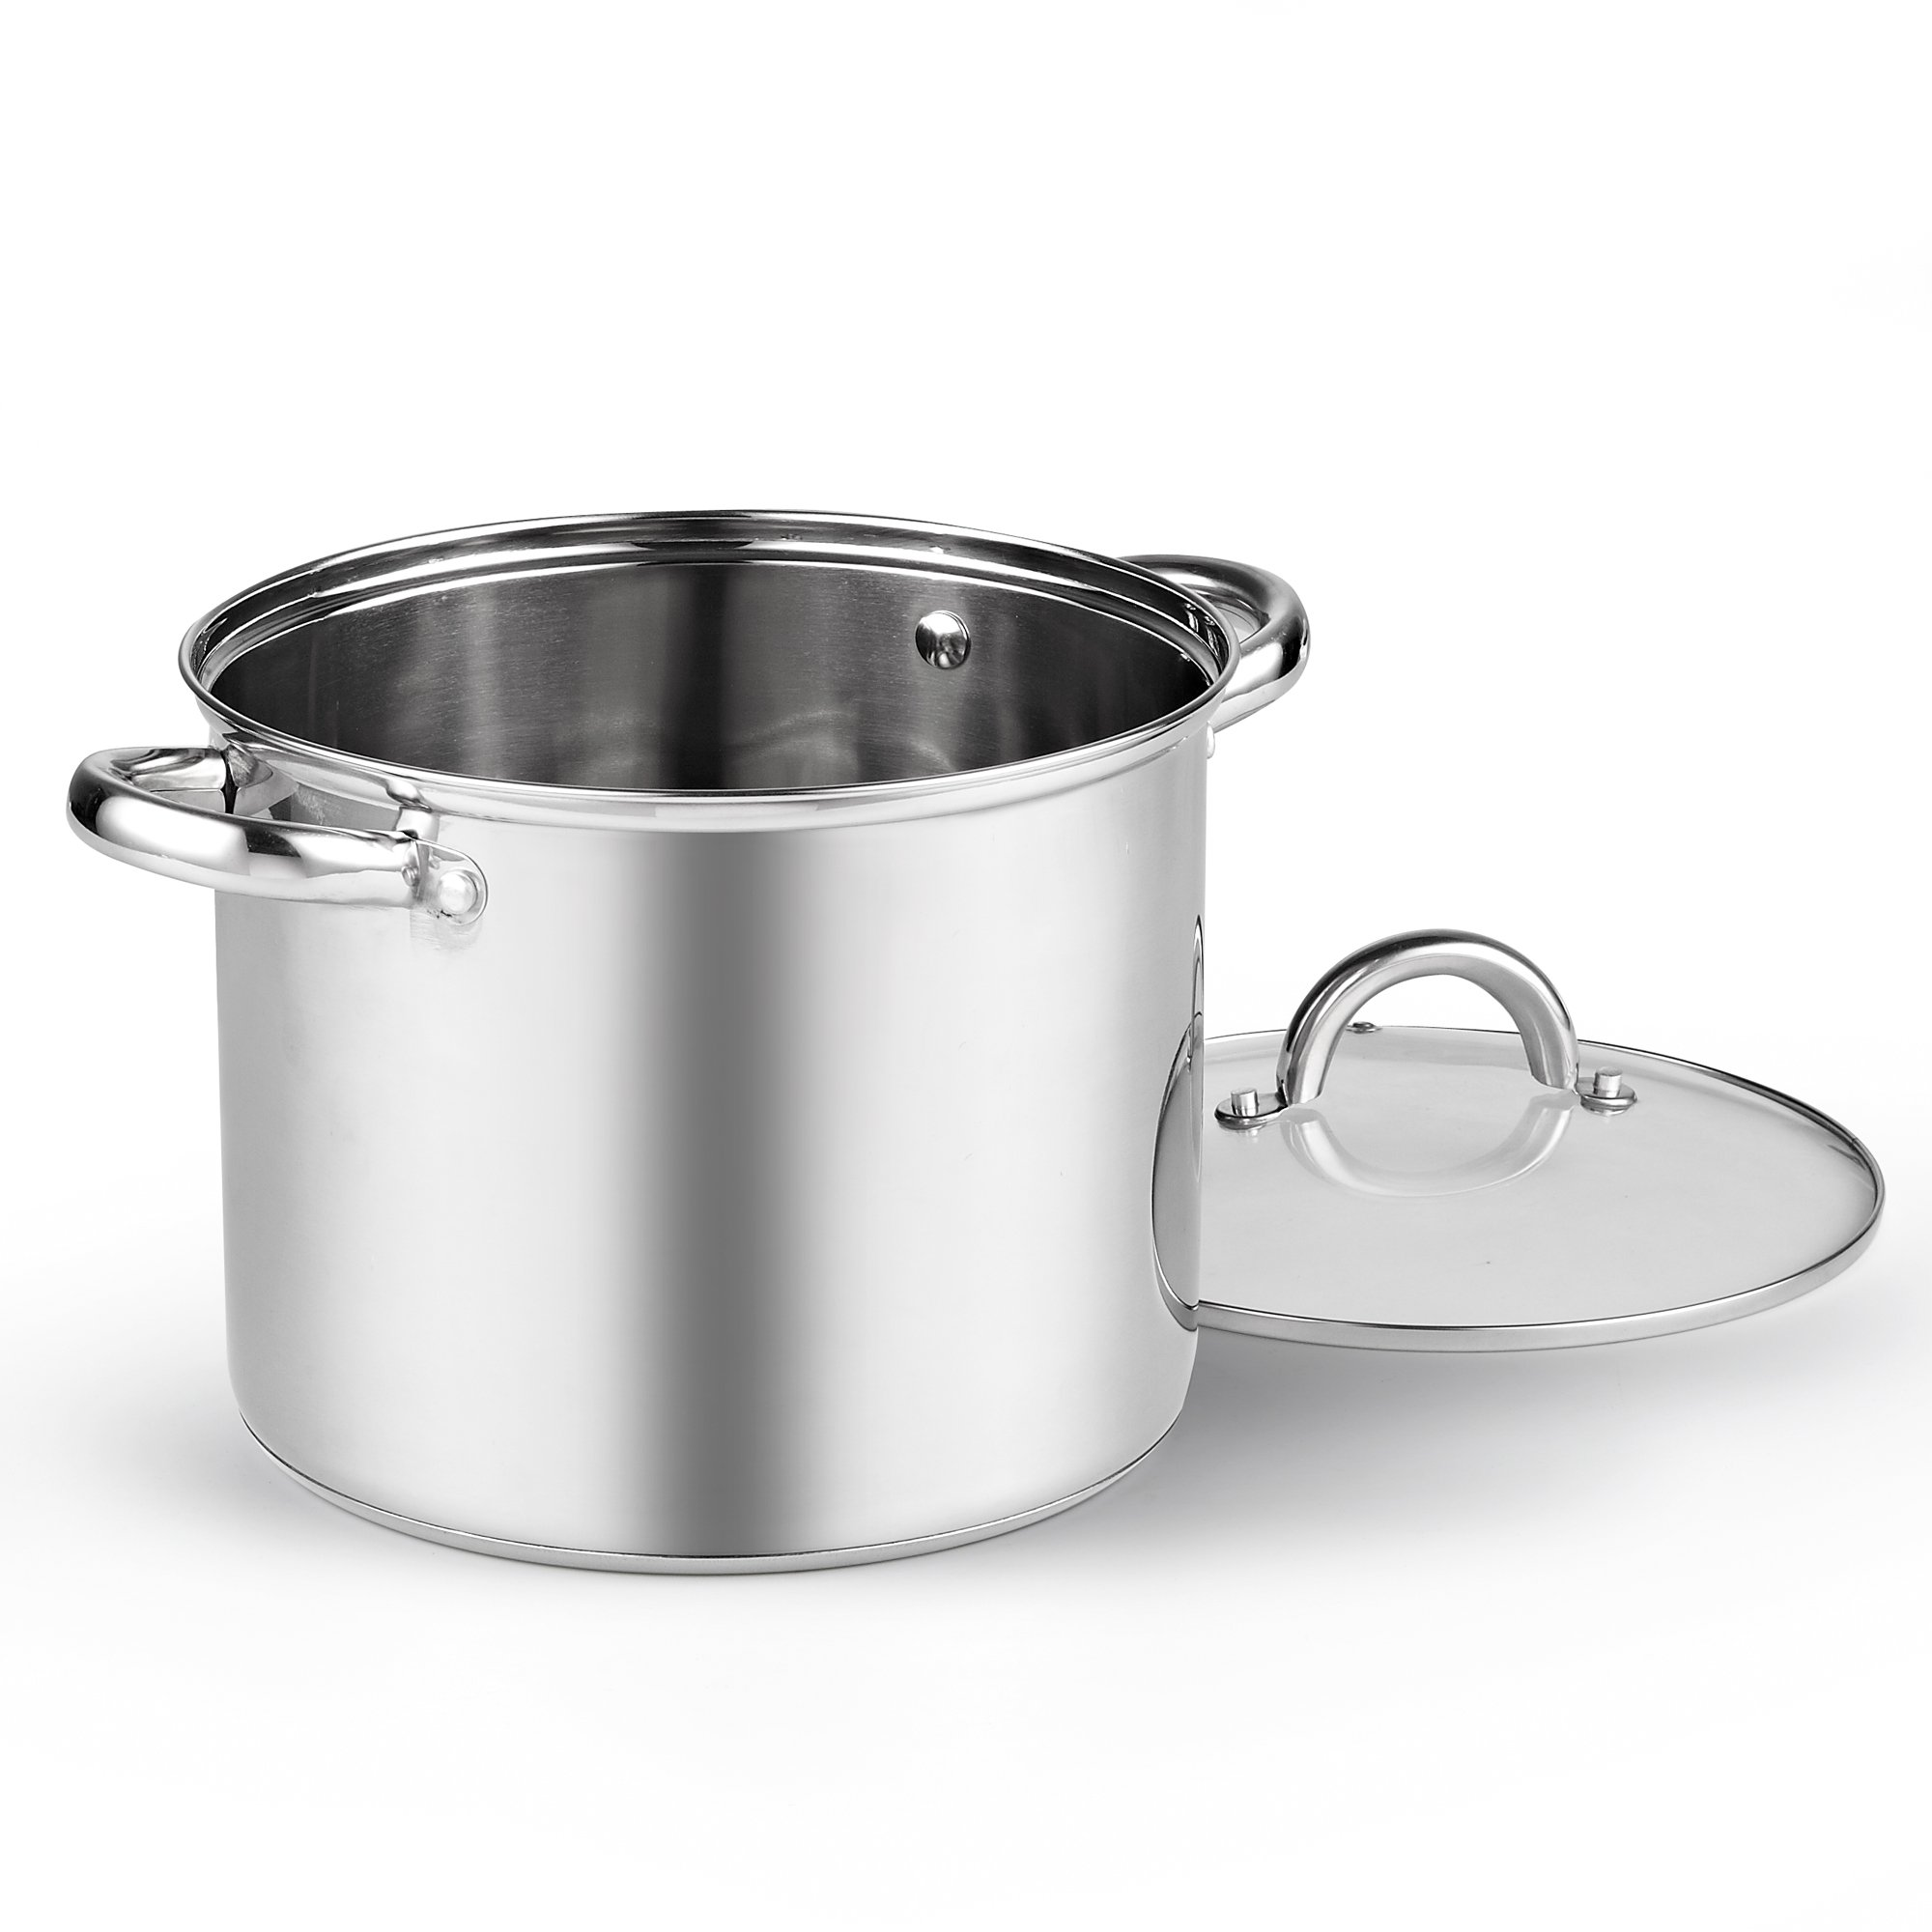 Cook N Home 8 Quart Stainless Steel Stockpot with Lid by Cook N Home (Image #2)